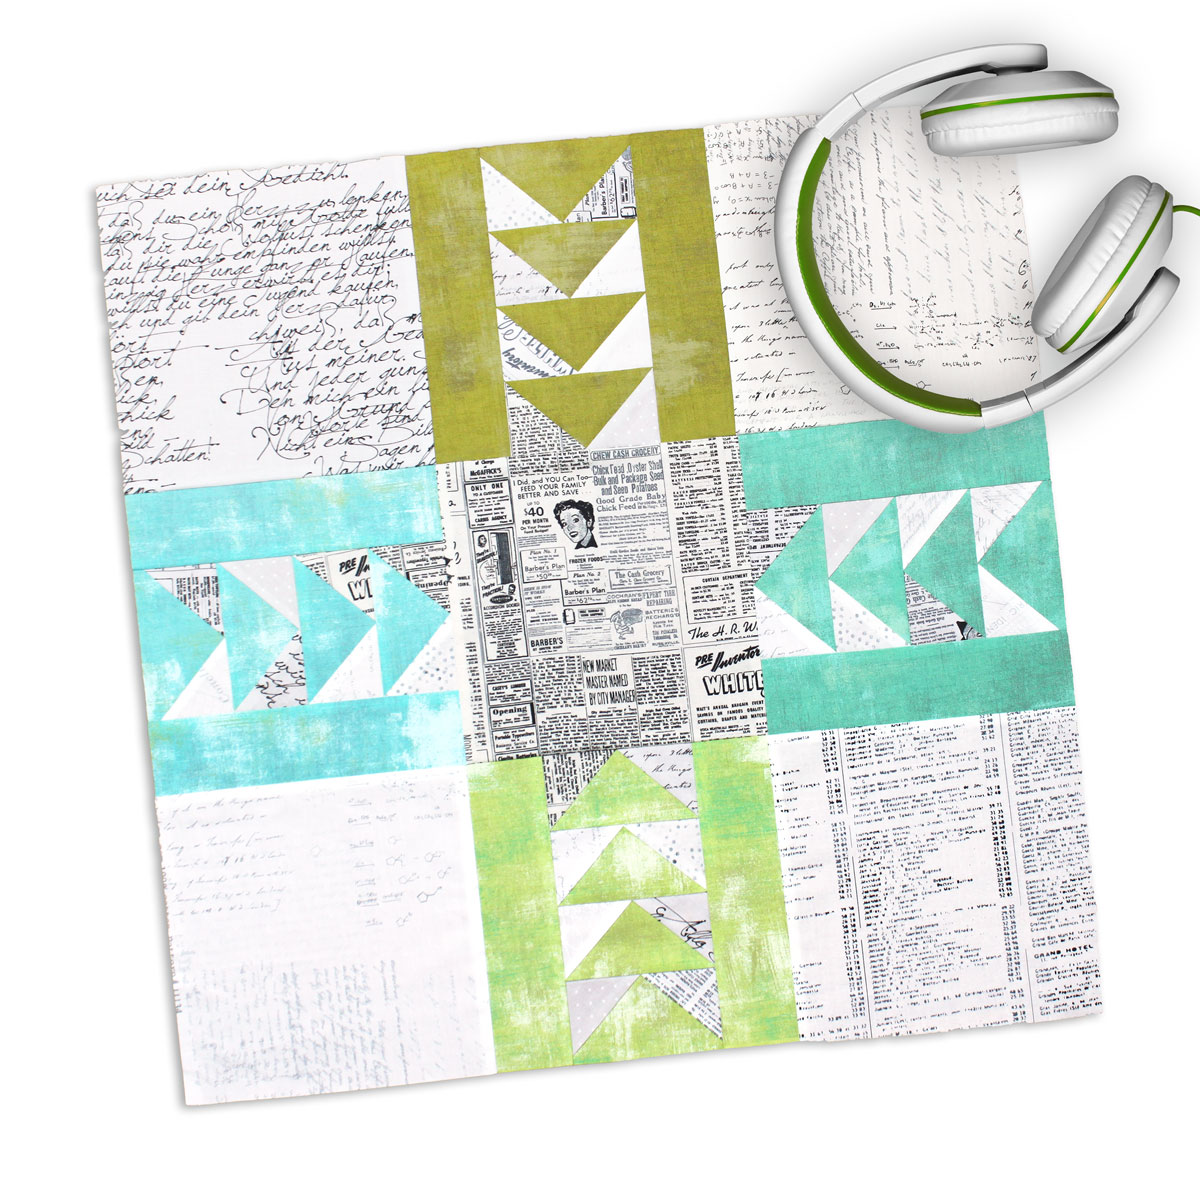 Free quilt along Blockheads 2018, Block 5: Impact Fabrics used in the block are from Moda, Basic Grey GRUNGE and Zen Chic PAPER